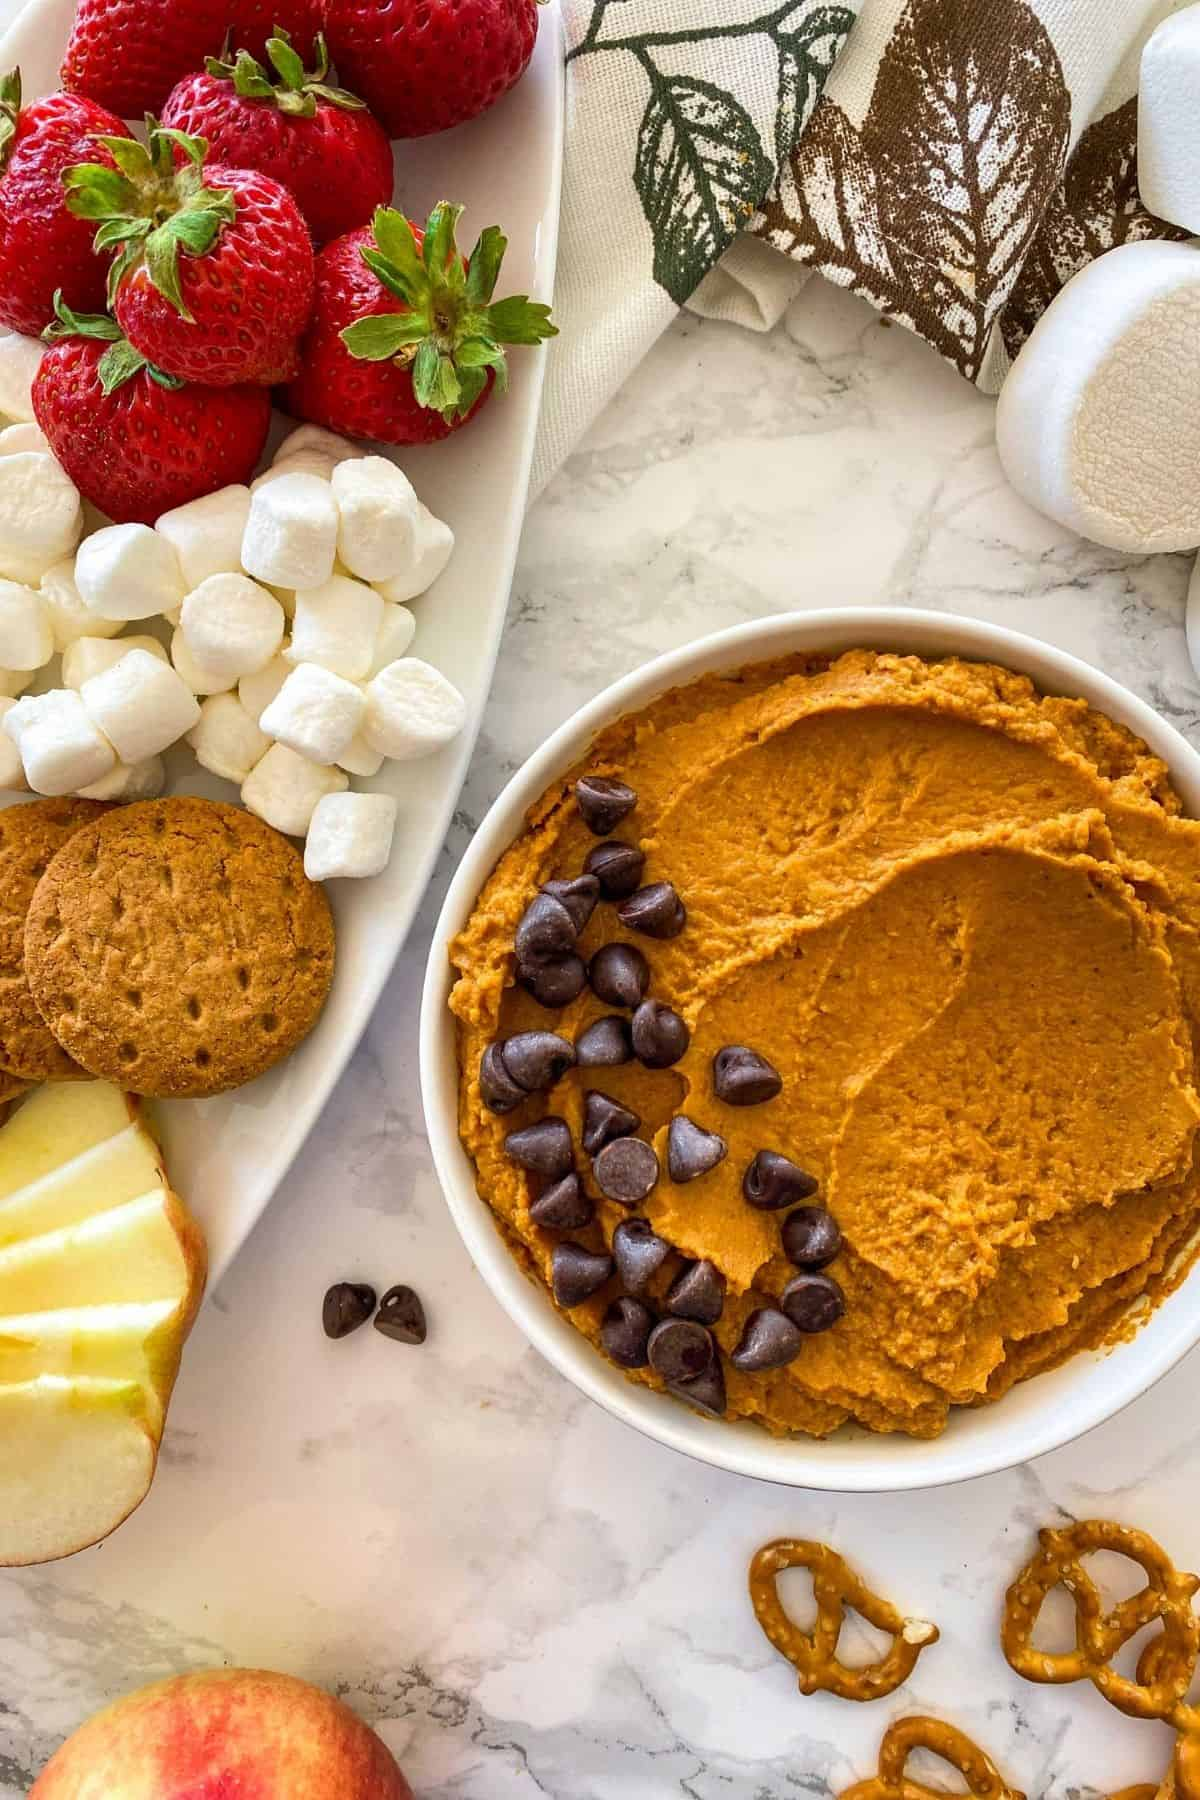 Bowl with orange dip inside and chocolate chips on top.